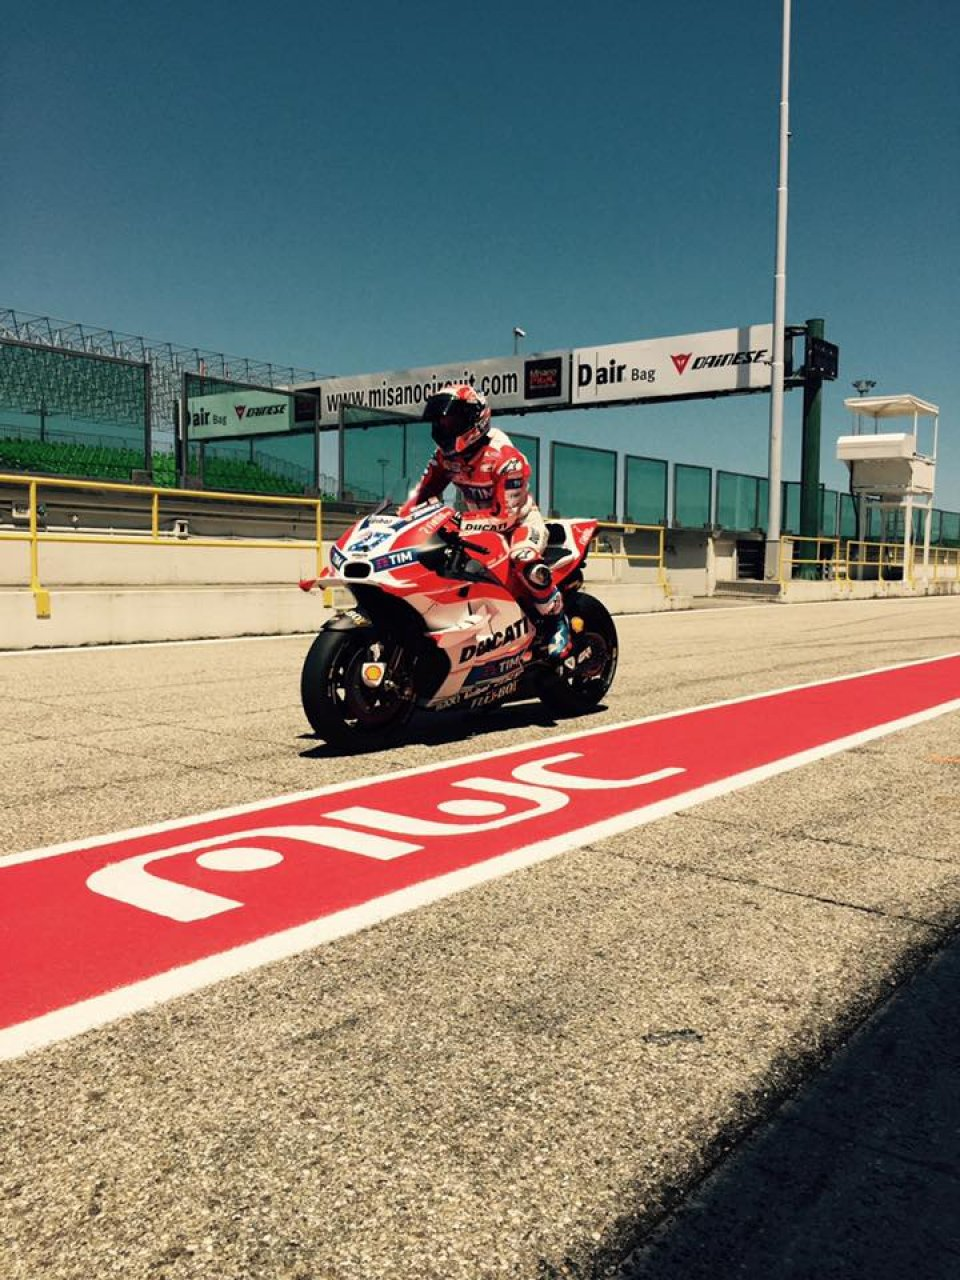 PICTURE: Stoner on the Ducati in Misano